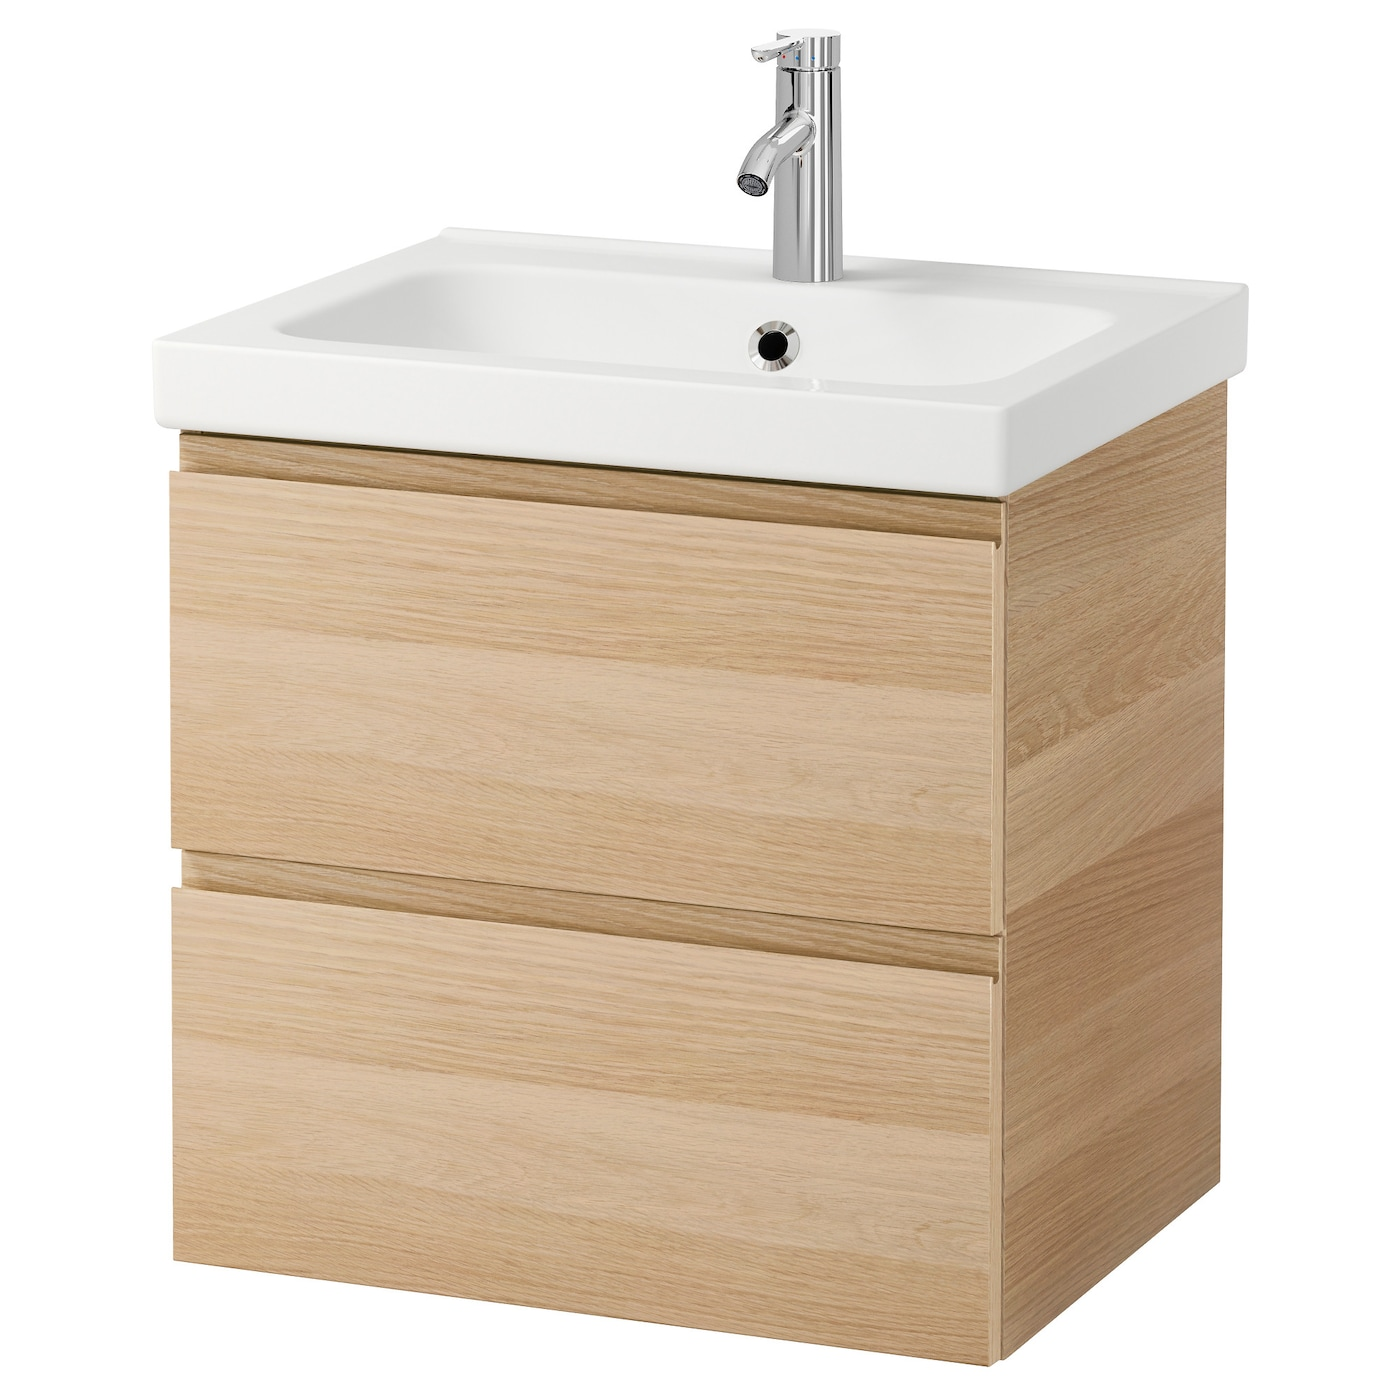 ... Wash-stand with 2 drawers White stained oak effect 60x49x64 cm - IKEA